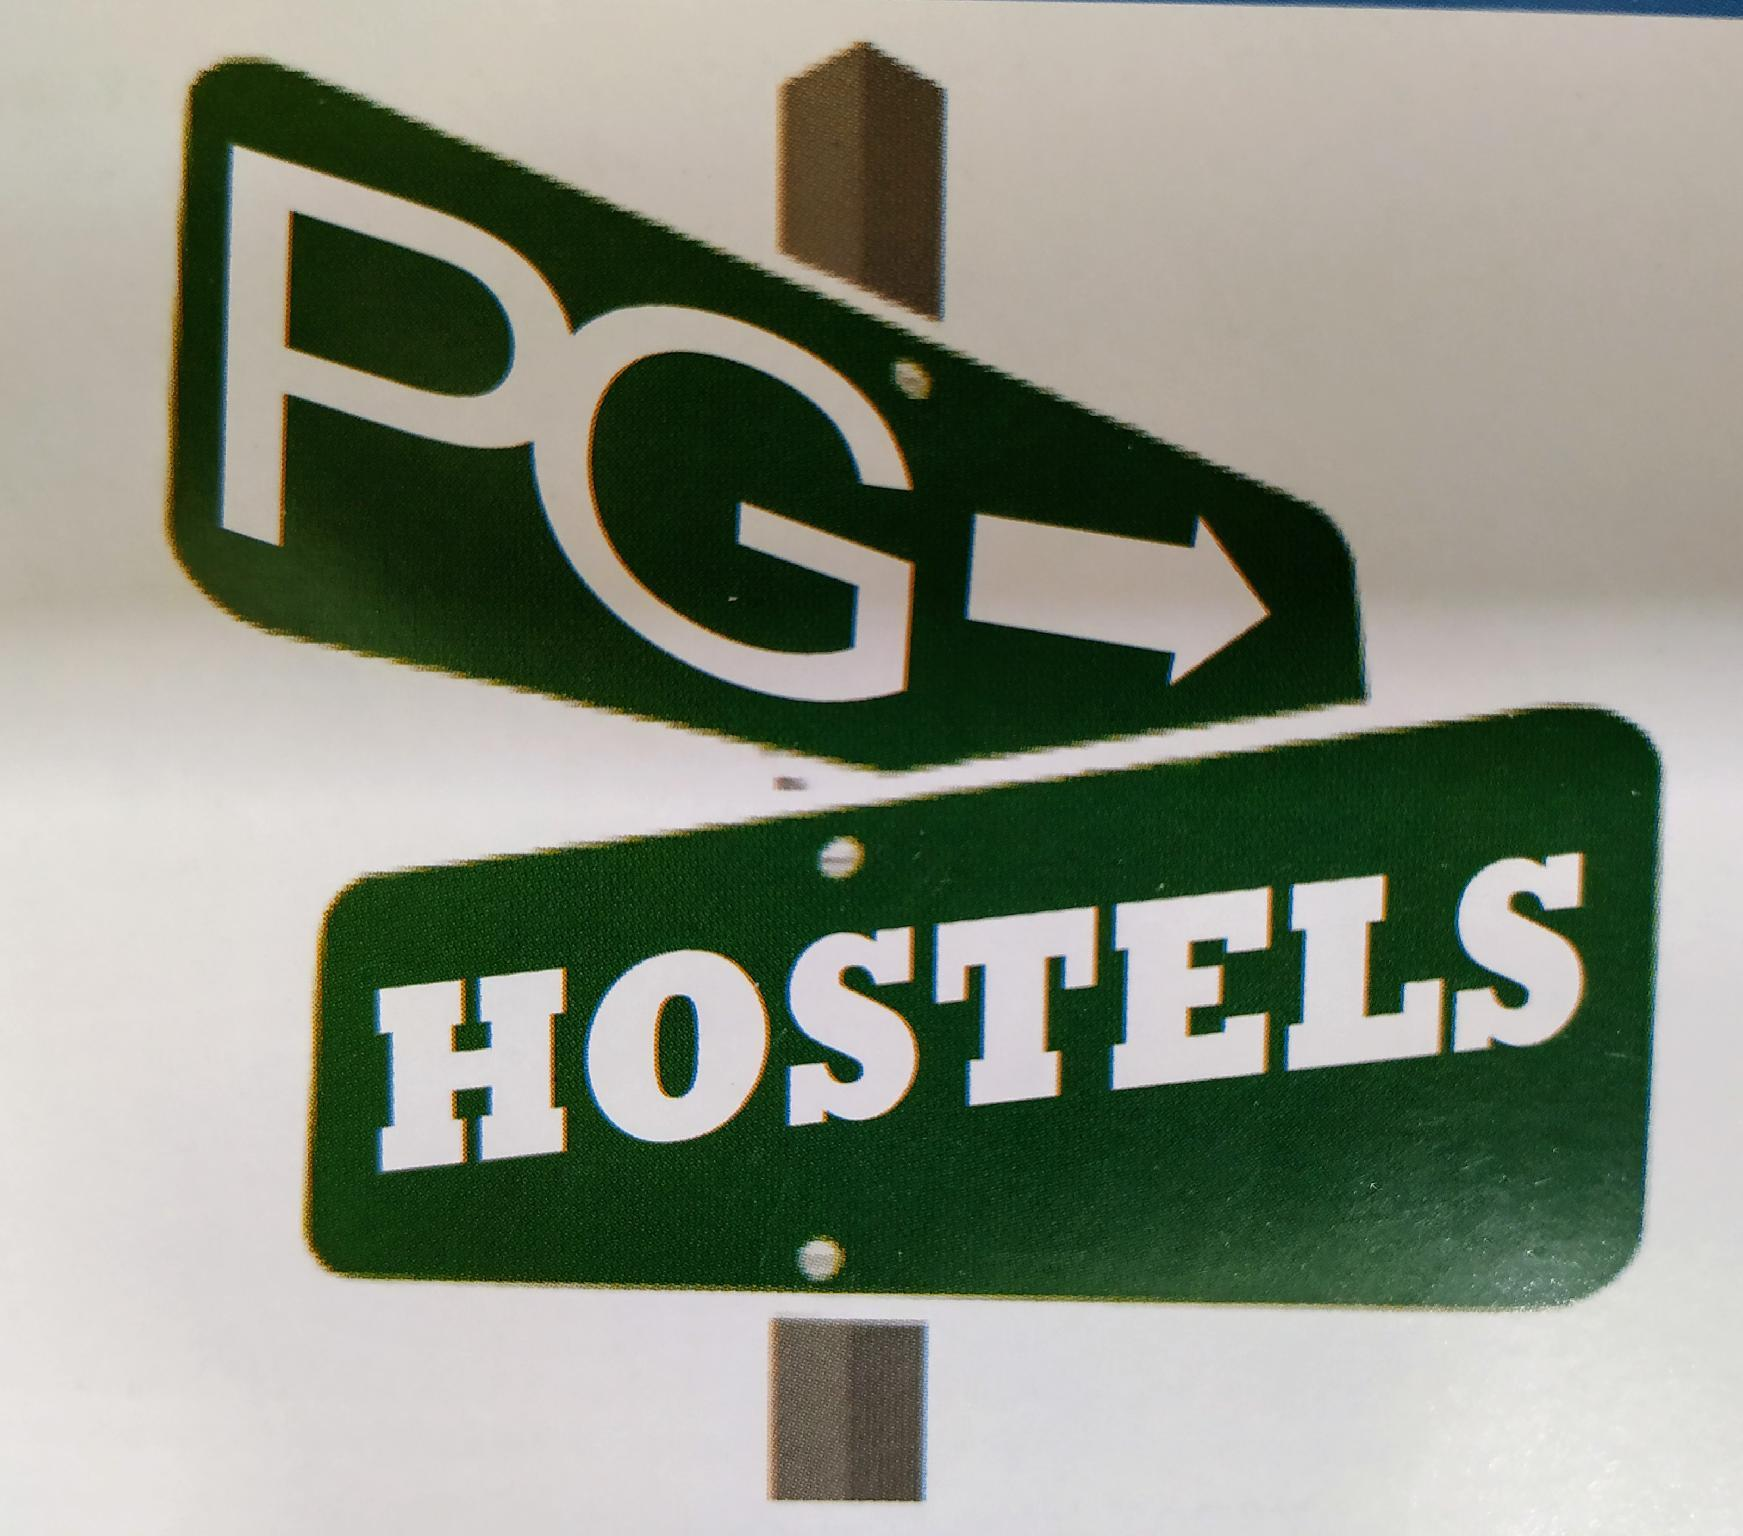 P G HOSTELS BED AND BREAKFAST